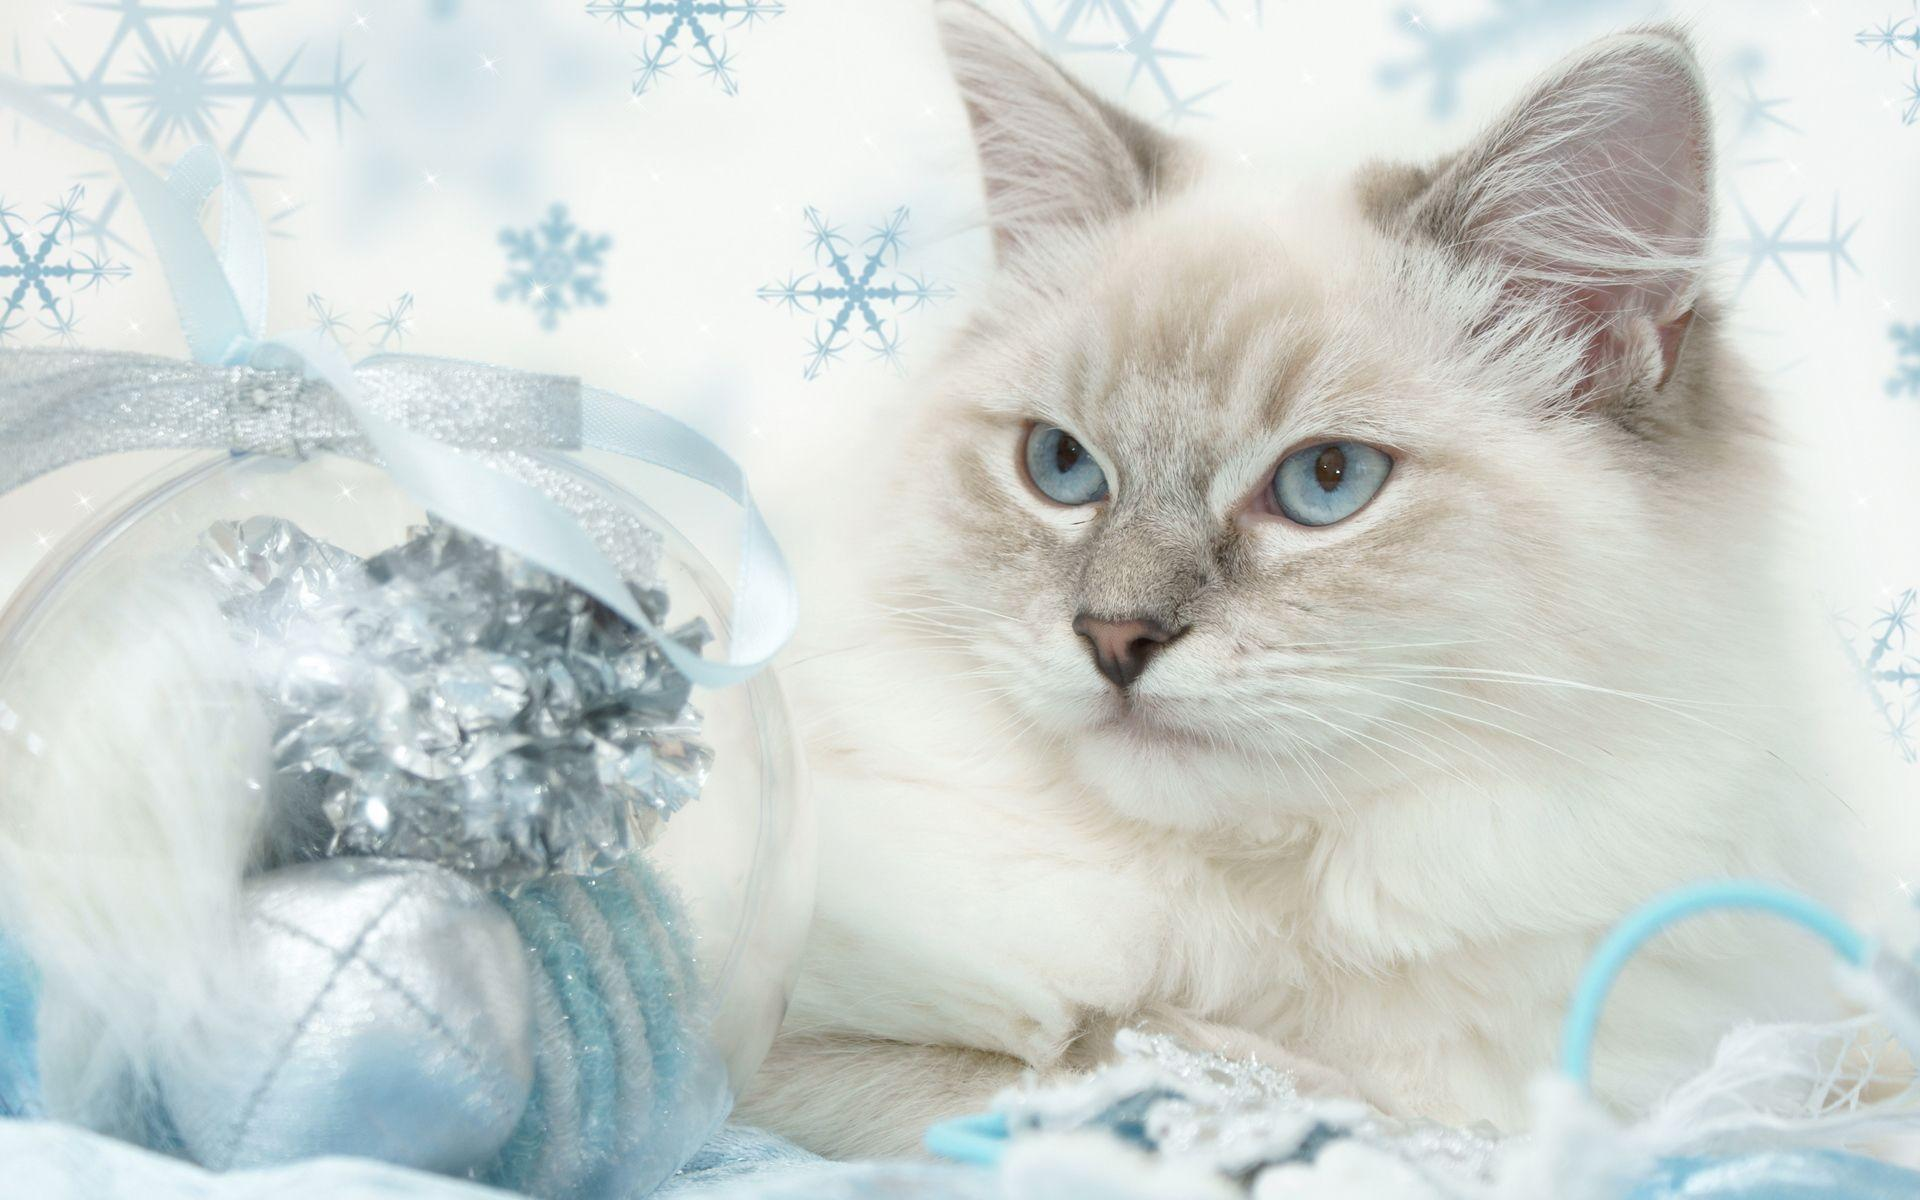 Wallpapers For > Cute Christmas Kitten Wallpaper